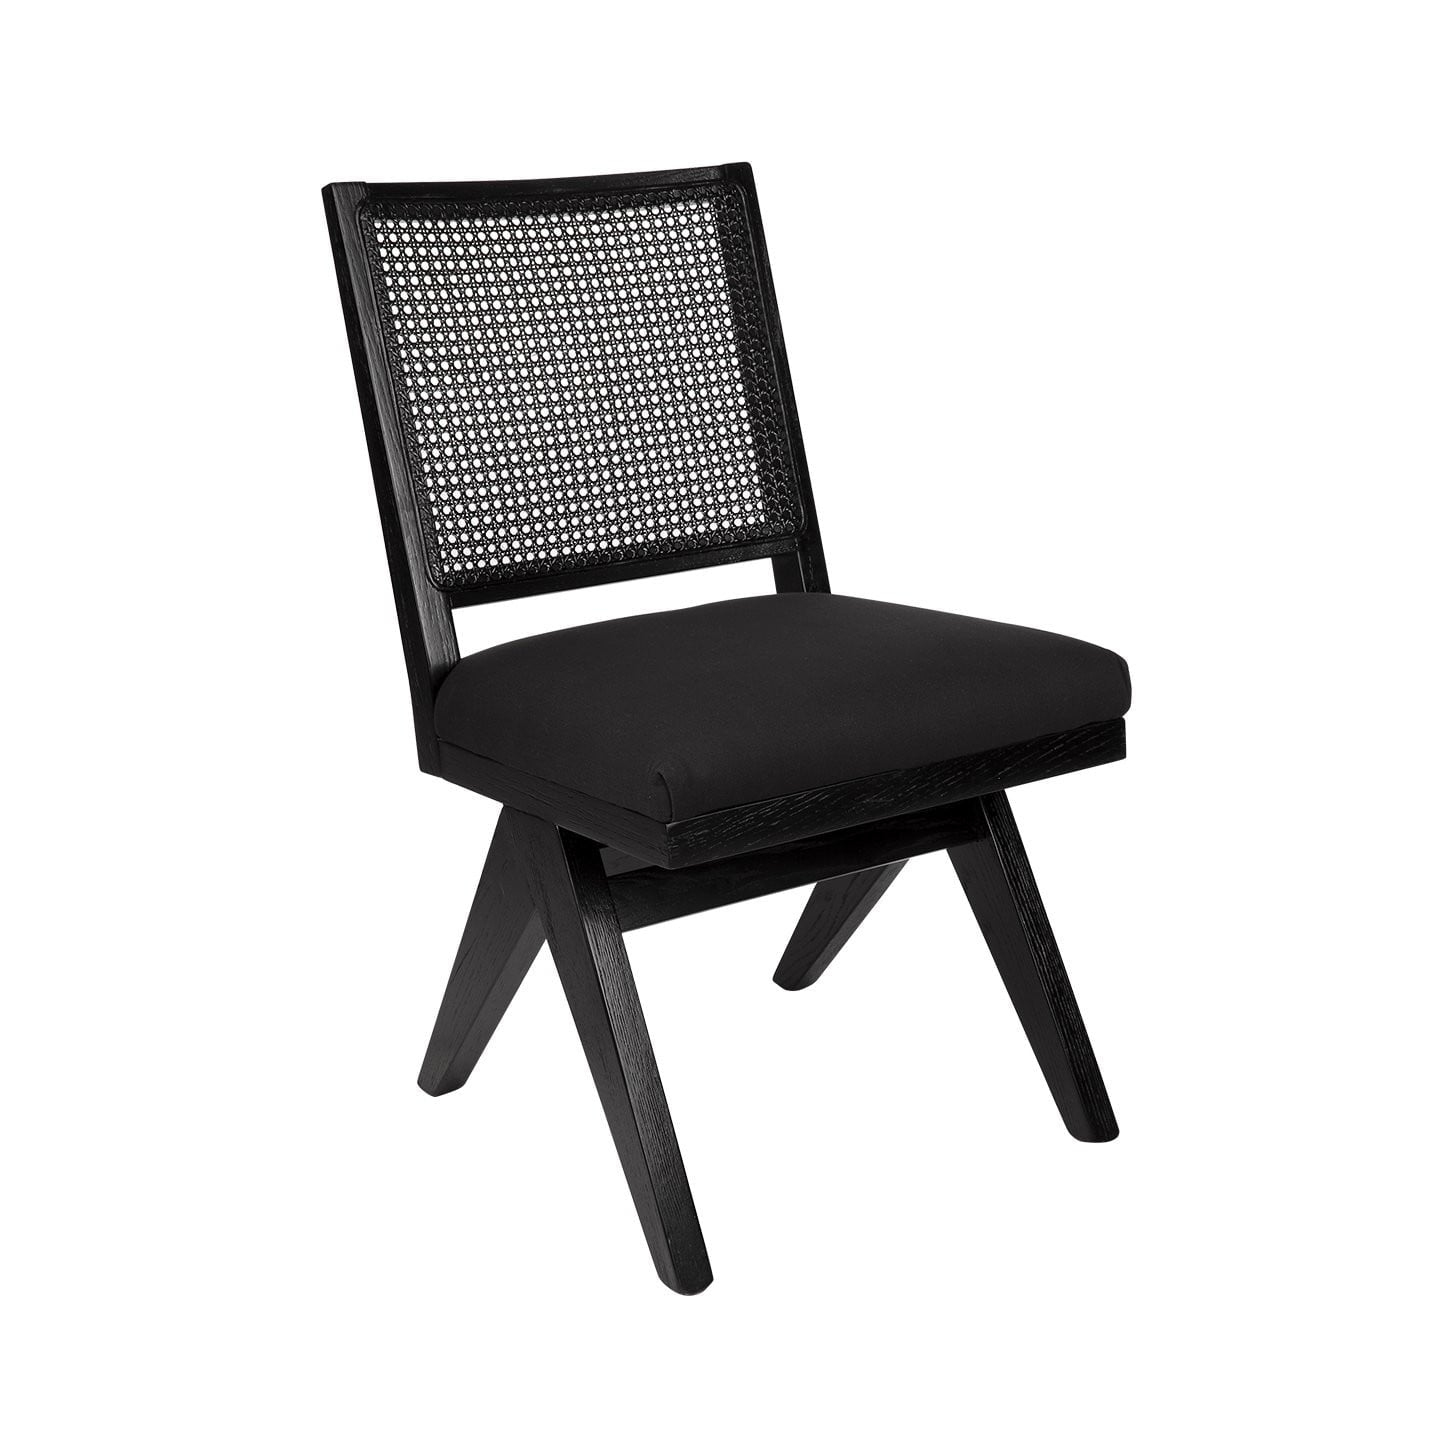 The Imperial Rattan Black Dining Chair Black | Attica Luxury Furniture Sydney